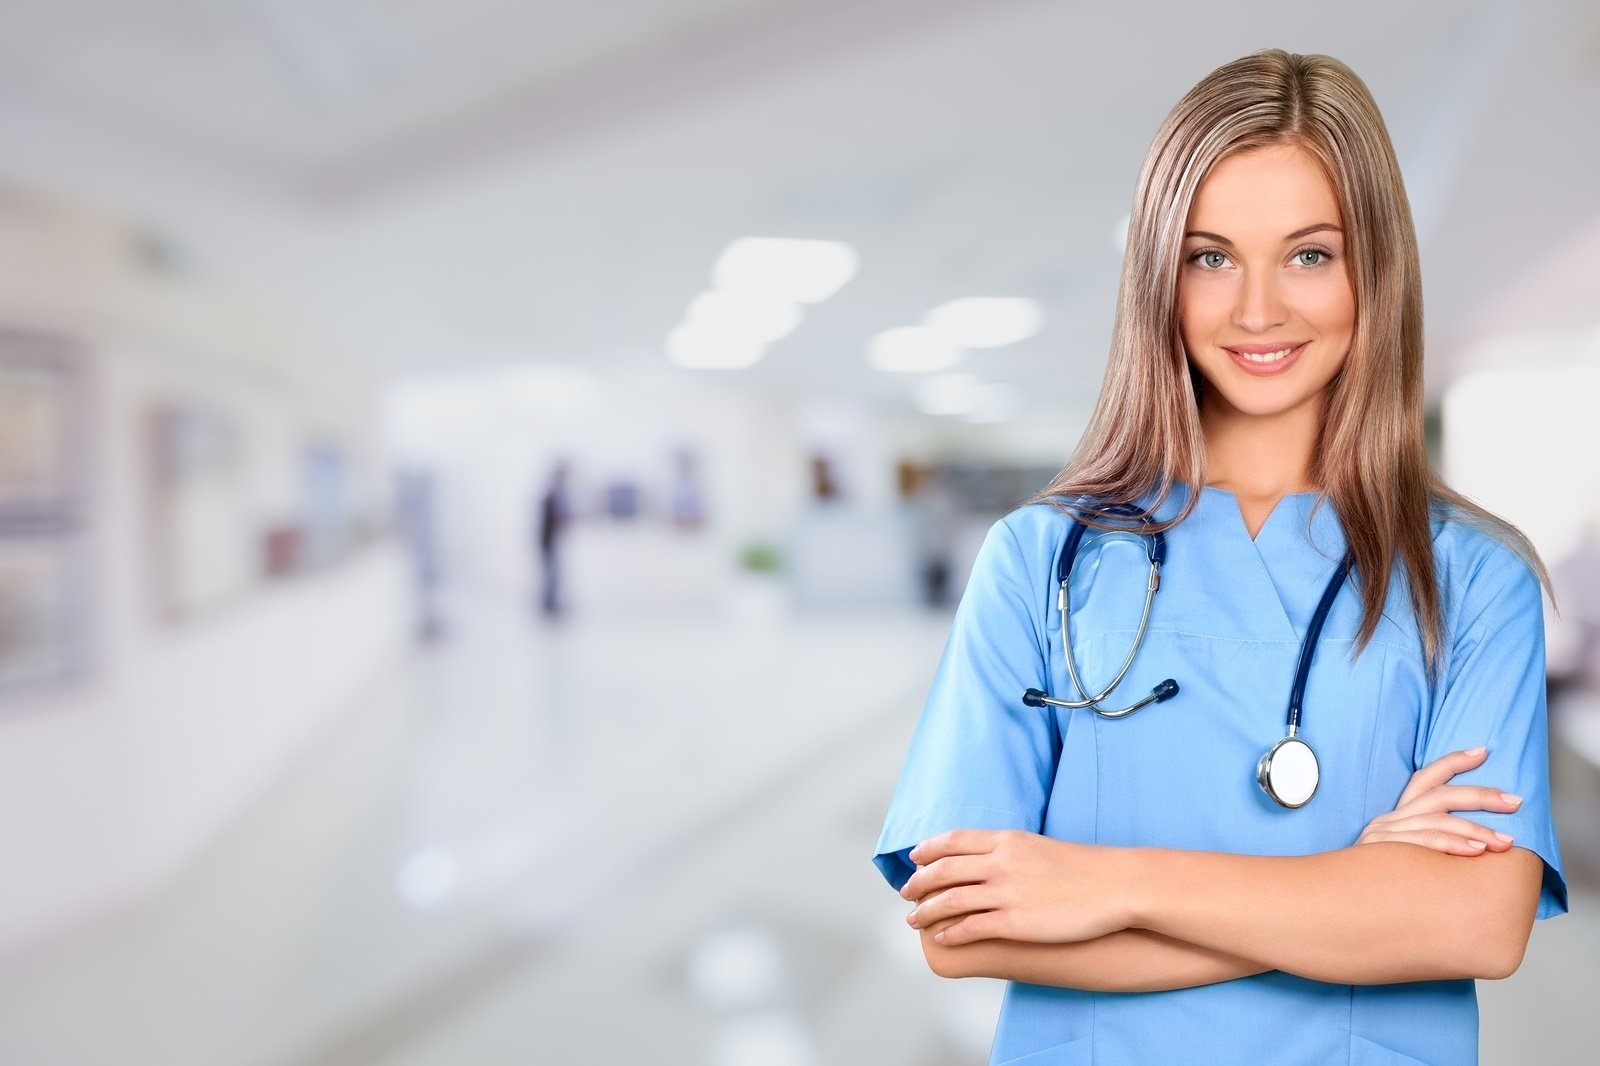 how-to-achieve-smooth-transition-lpn-to-rn-athena-career-academy.jpg